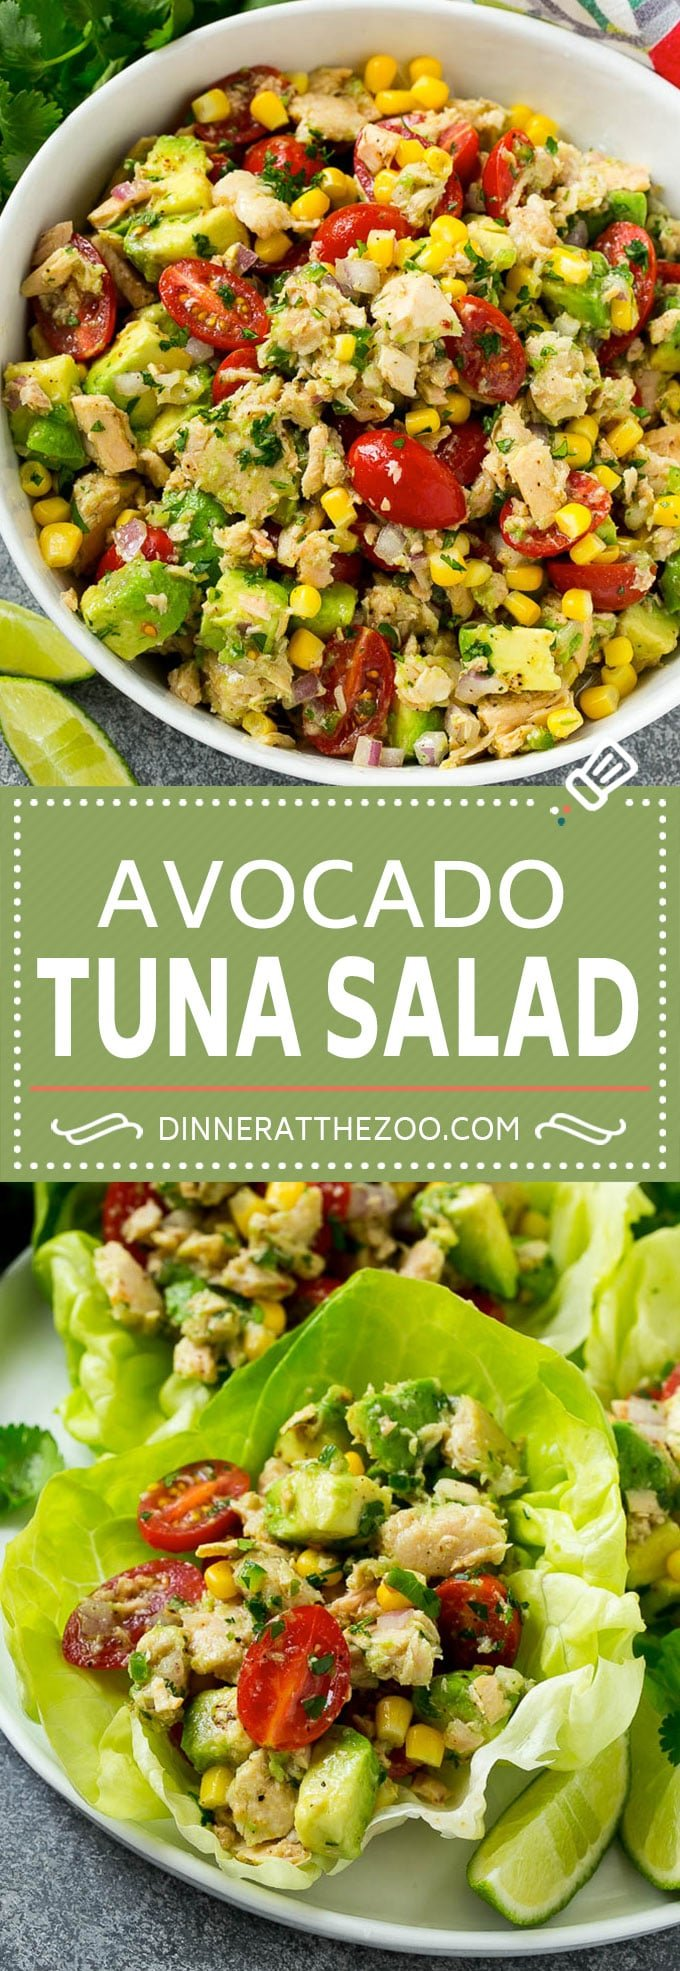 Avocado Tuna Salad Recipe | Mexican Tuna Salad | Easy Tuna Salad | Healthy Tuna Salad #tunasalad #tuna #fish #seafood #avocado #lunch #dinneratthezoo